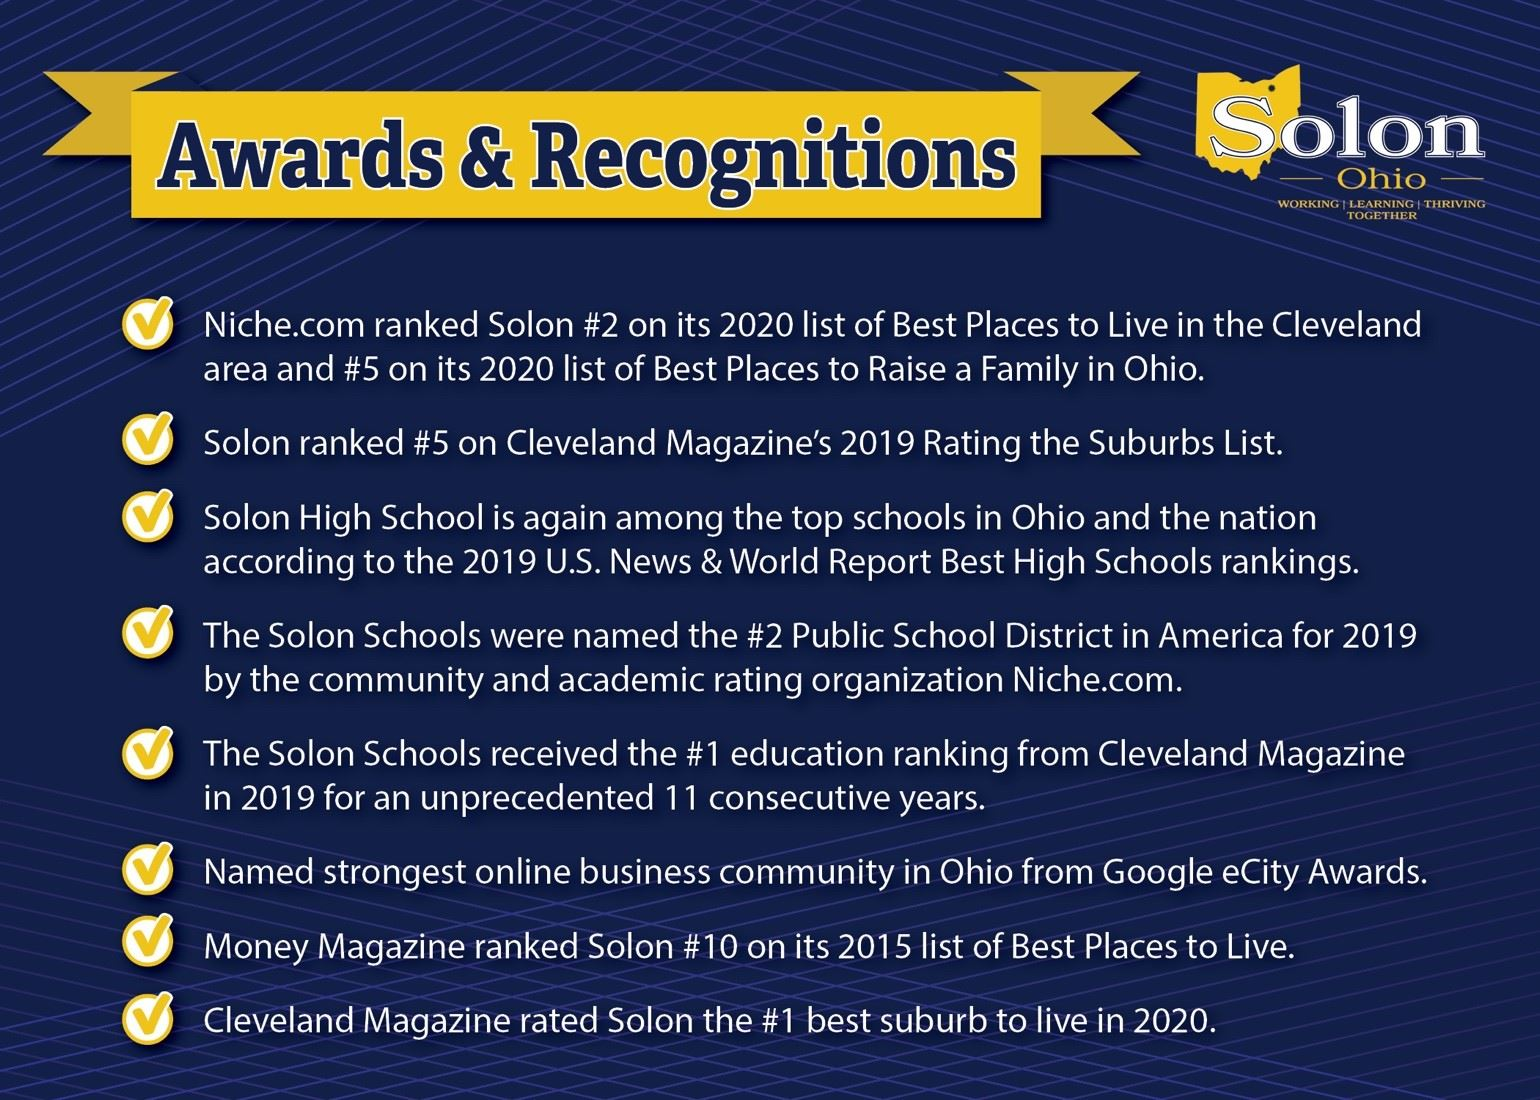 2020 Awards and Recognitions